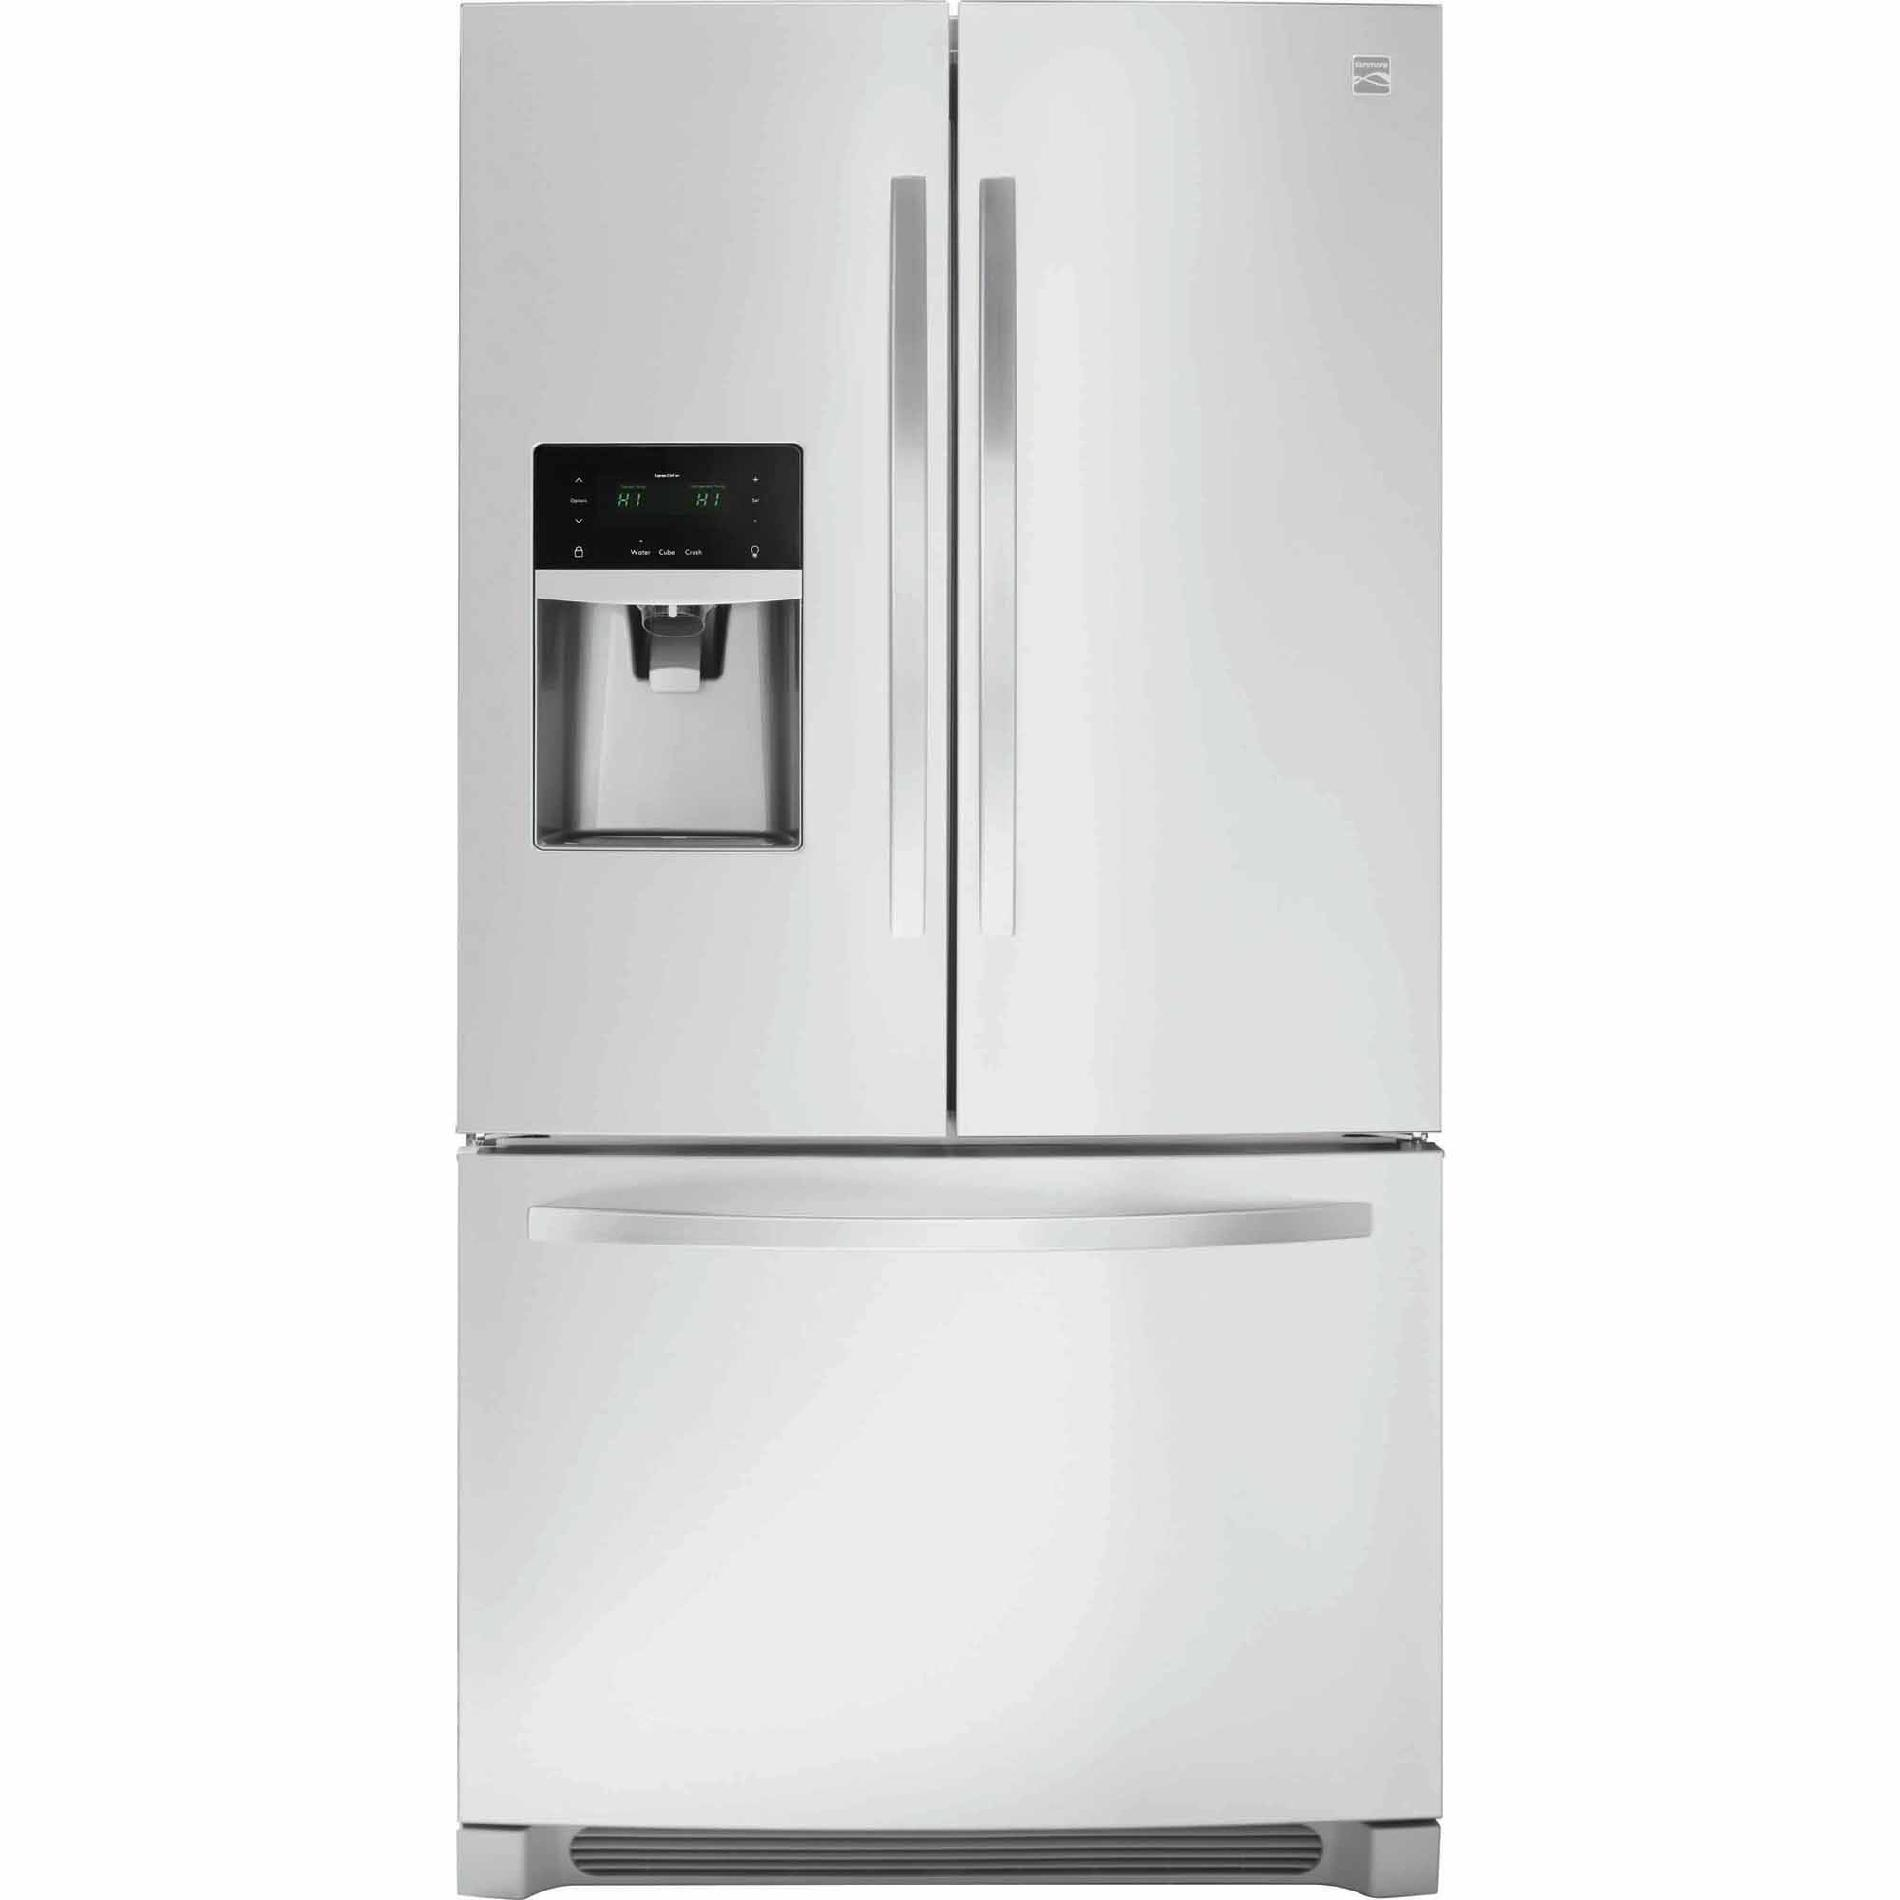 Kenmore 70343 27.2 cu. ft. French Door Refrigerator - Stainless Steel